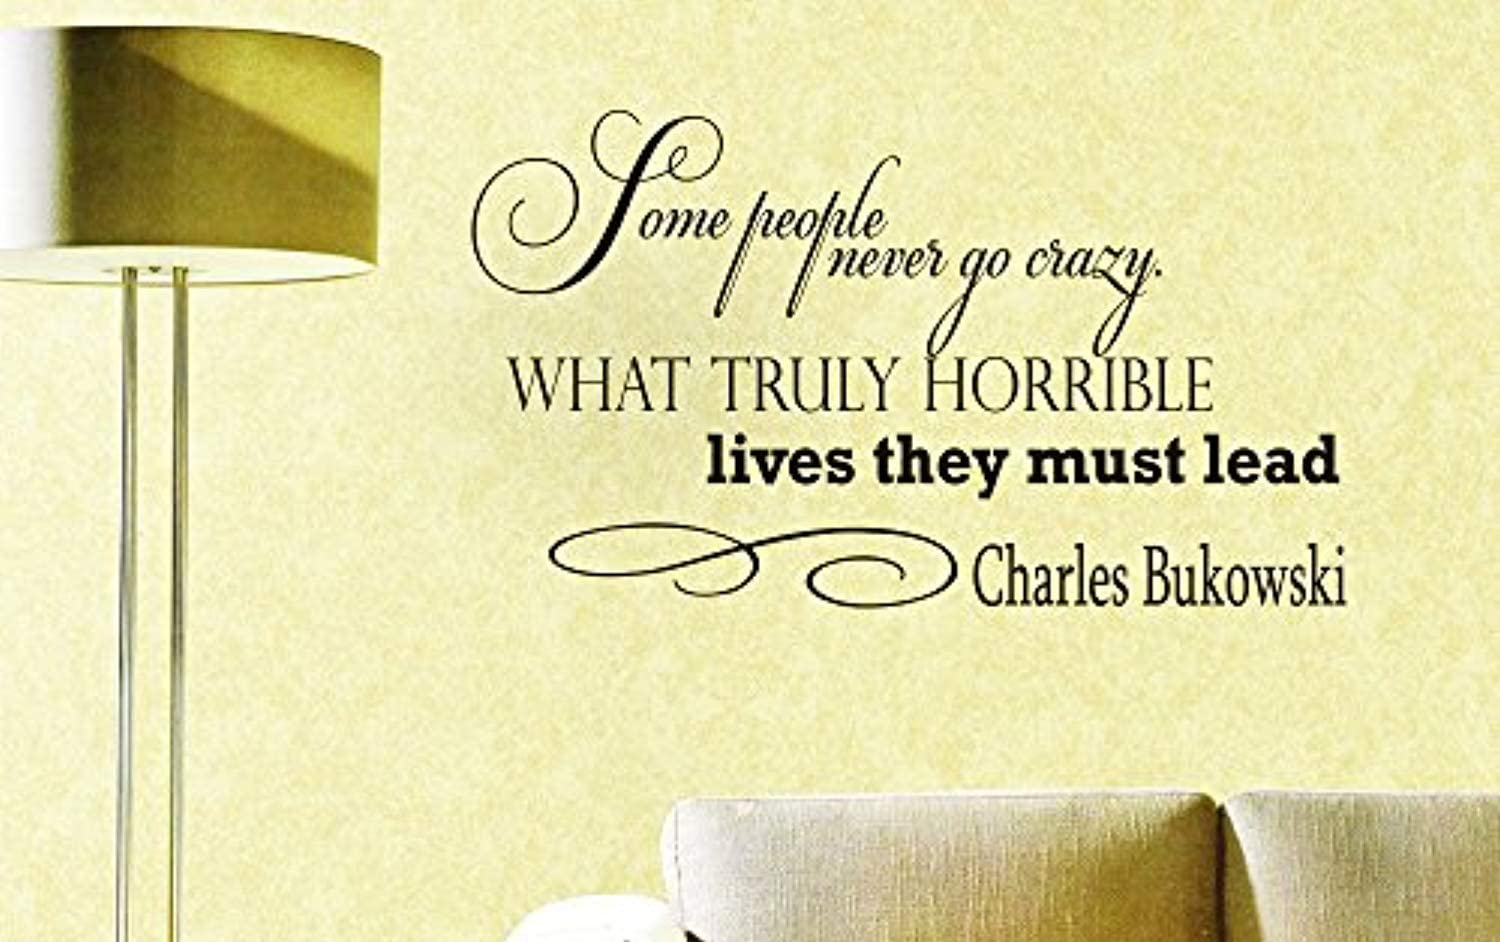 Wall Vinyl Decal Quote Sticker Home Decor Art Mural Some People Never go Crazy. What Truly Horrible Lives They Must Lead Charles Bukowski NG121